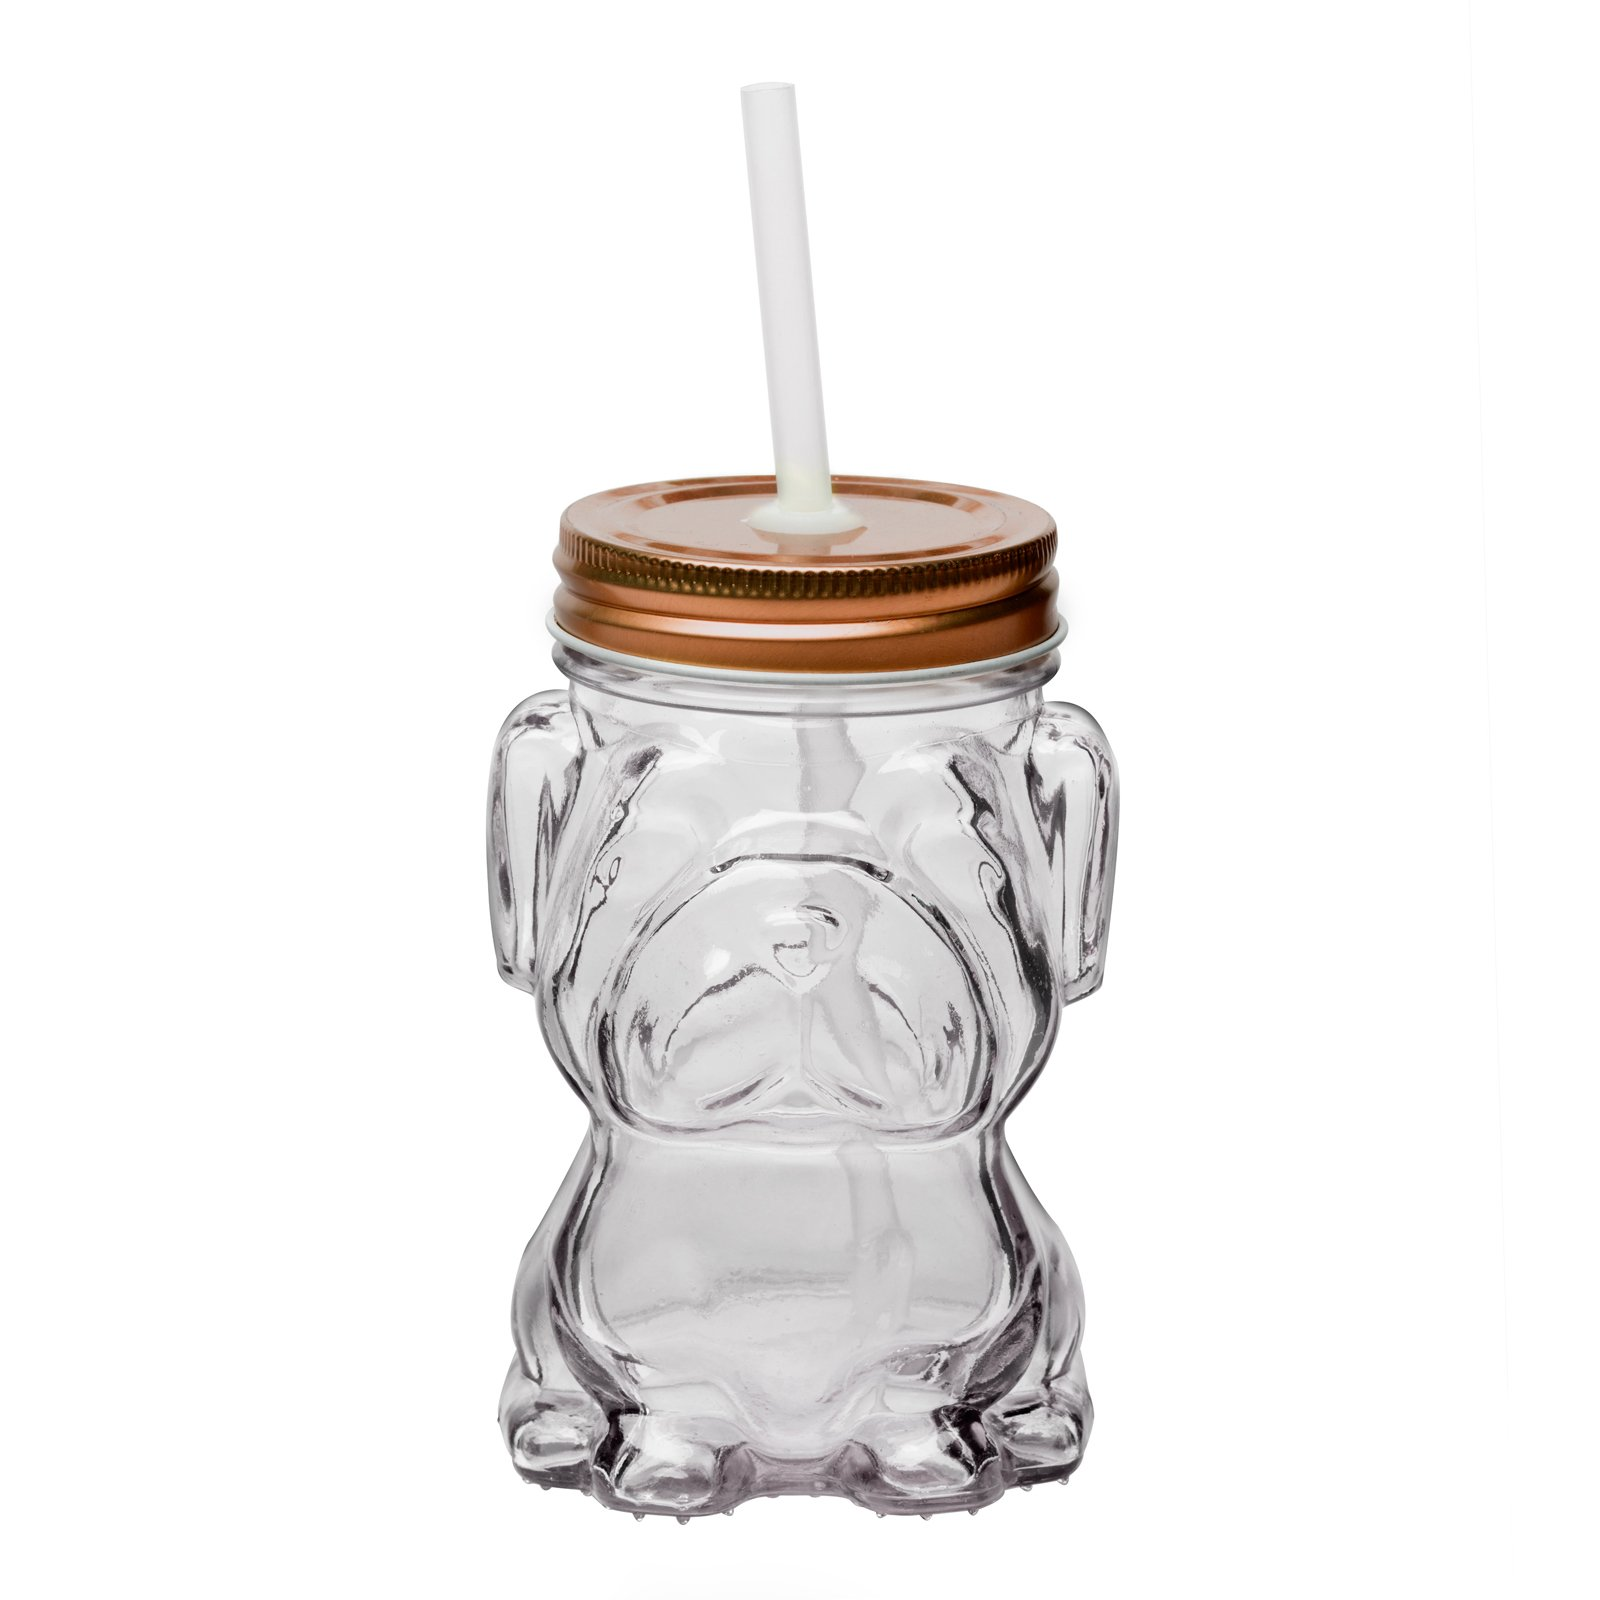 Amici Home 7CM204CS6R Mad Dog Mason Jar, Copper Twist Top Lid, Raised Textured Glass 14 Ounce Capacity, Set of 6 by Amici Home